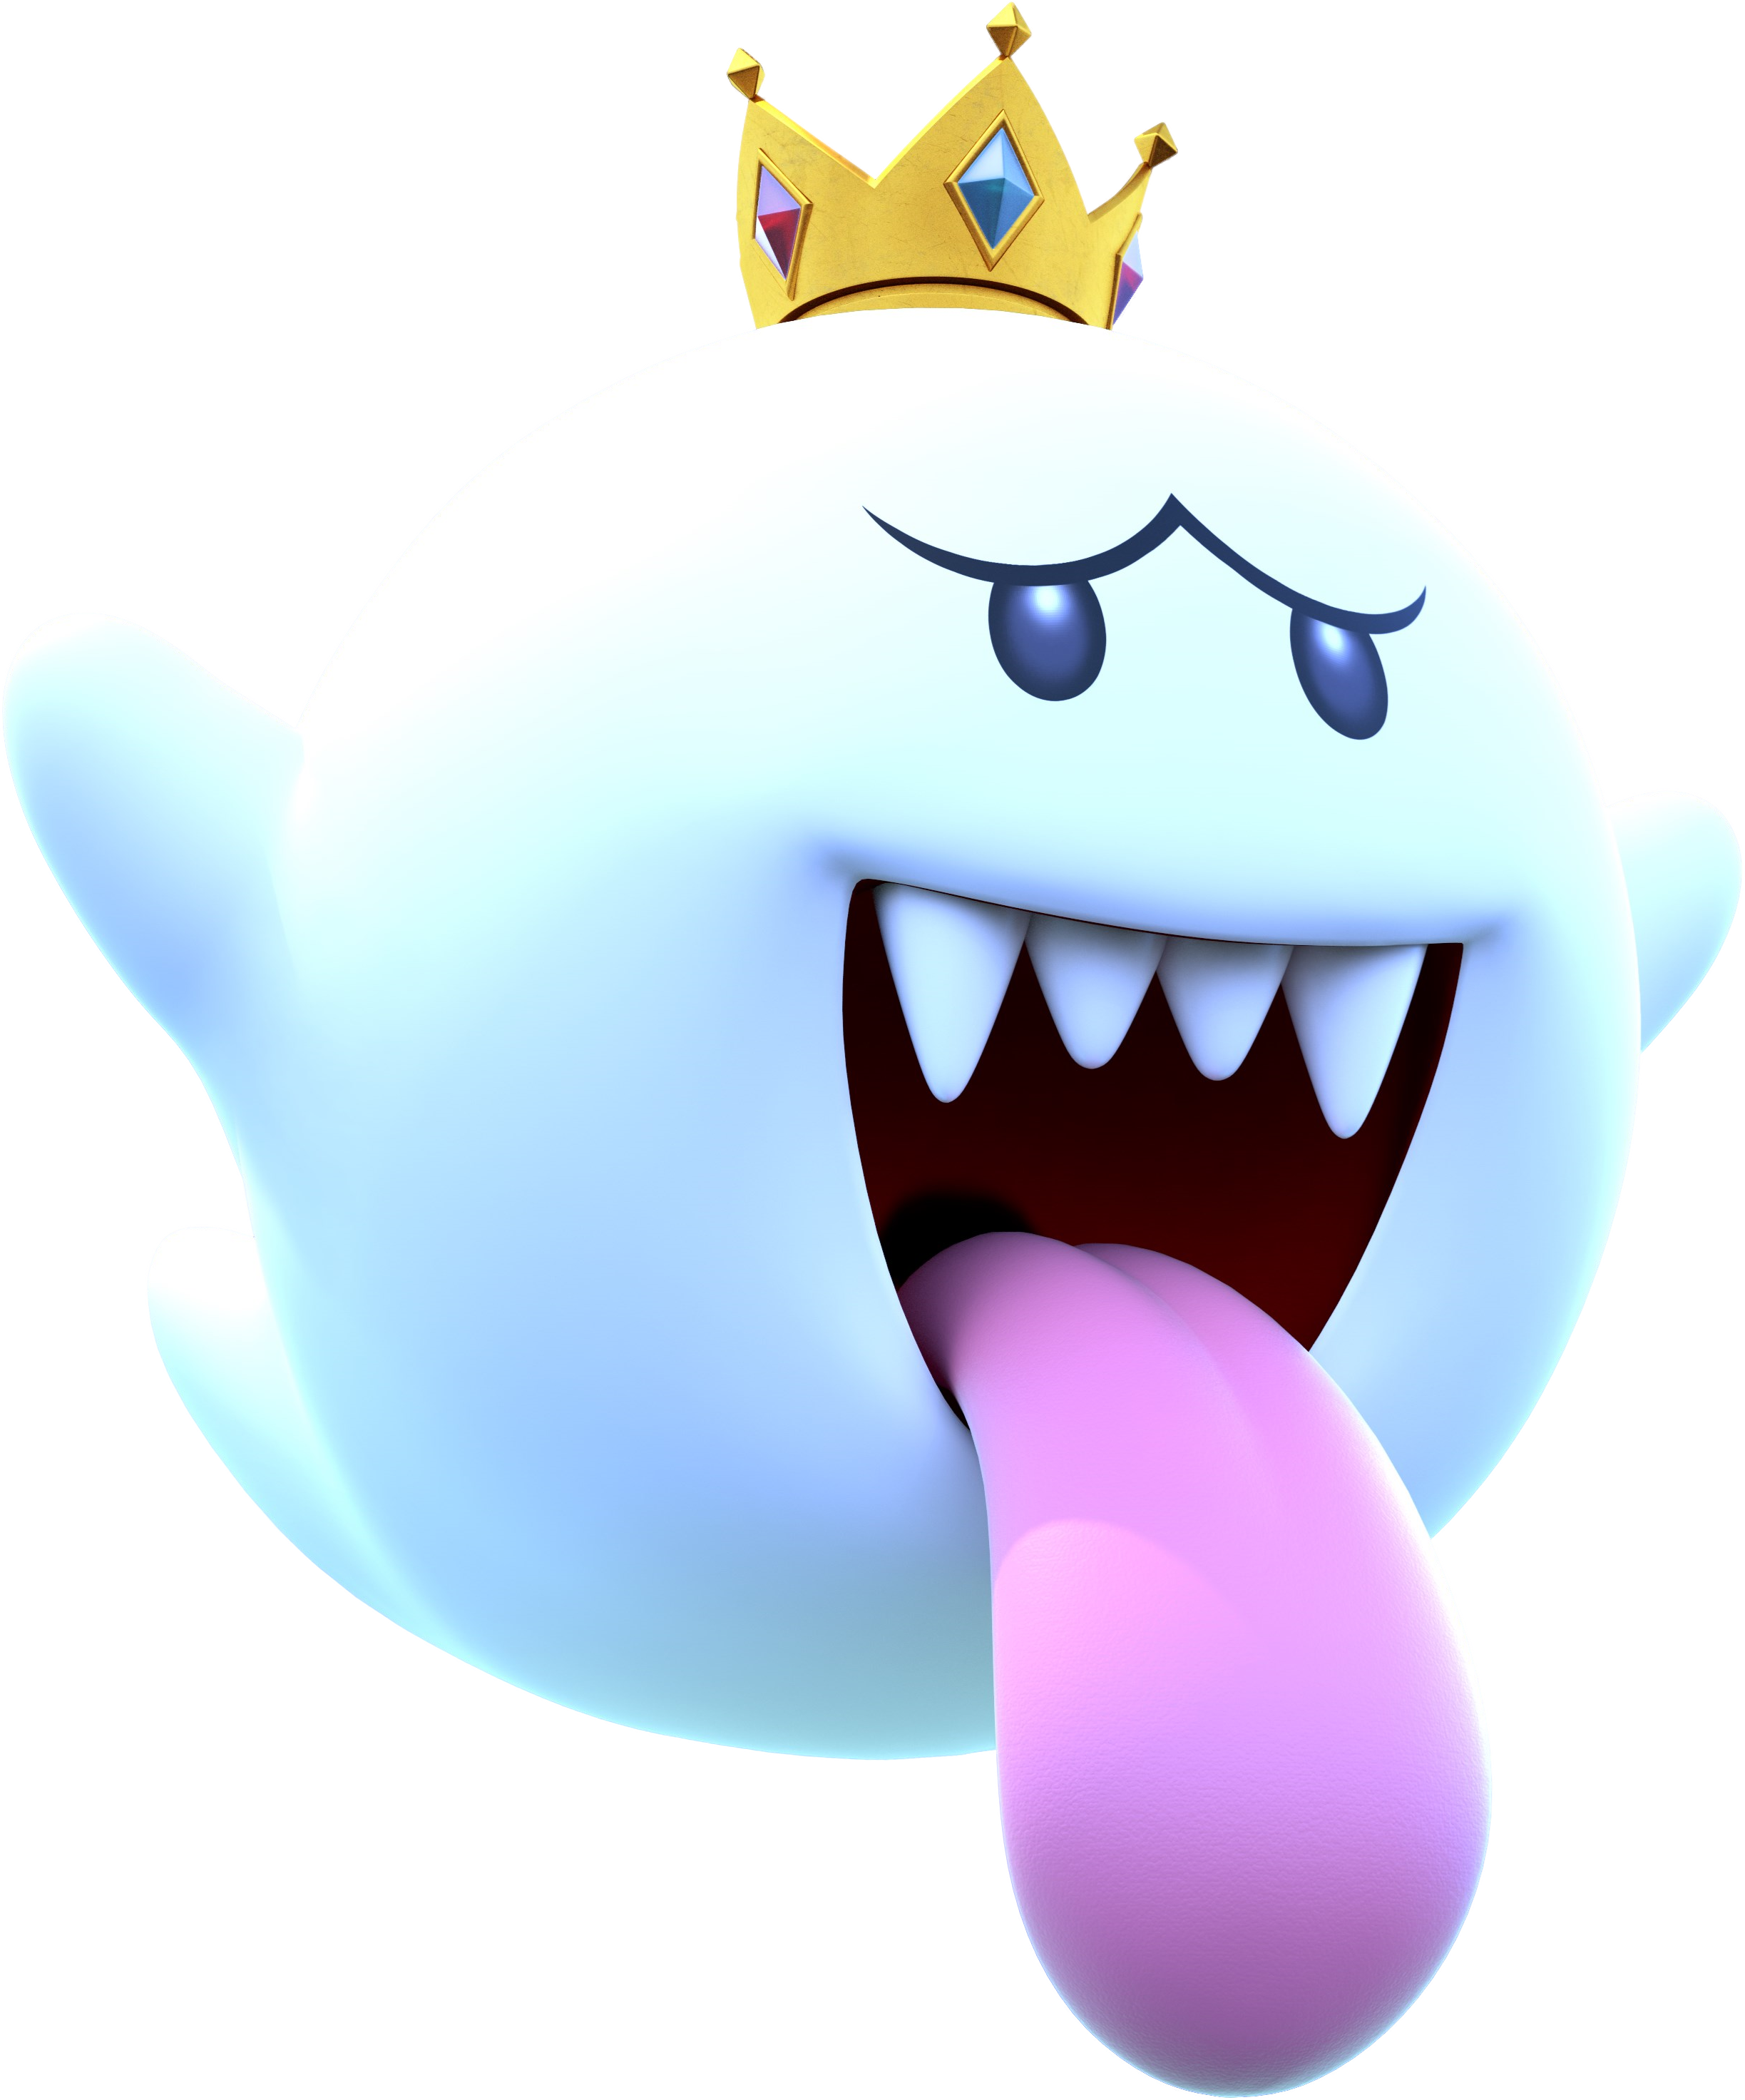 Halloween party at a park clipart royalty free King Boo's Villain Halloween Spooktacular Party - Nintendo World ... royalty free